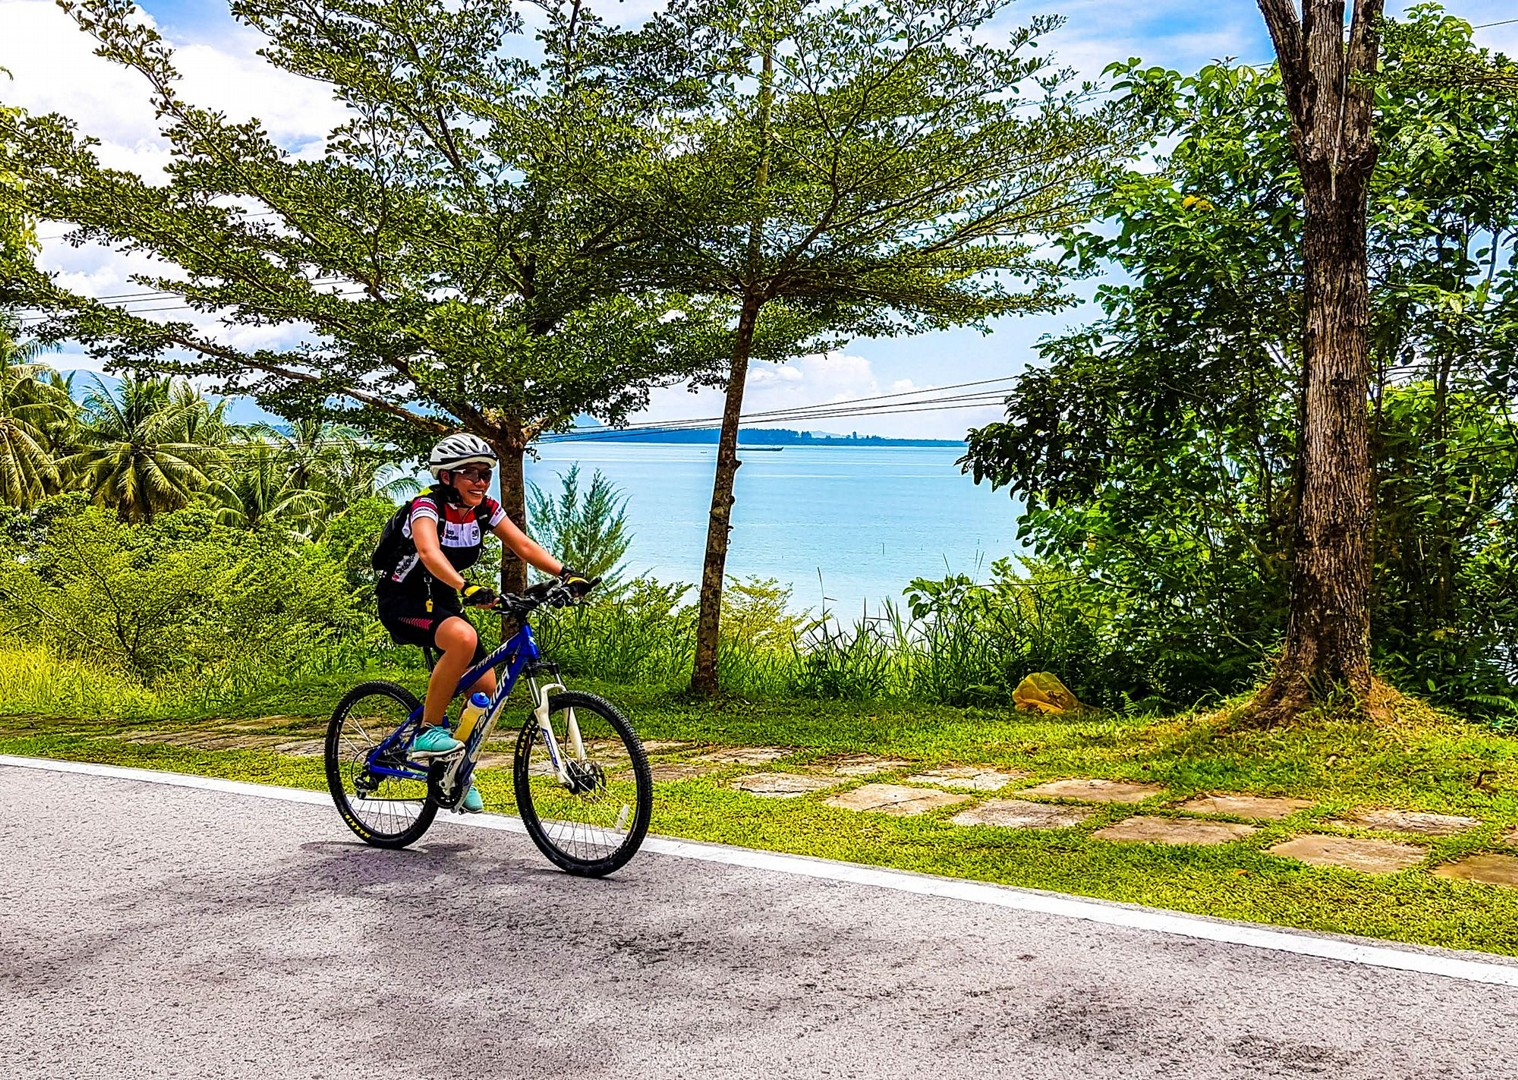 borneo-cycling-saddle-skedaddle-holidays-family-trip.jpg - NEW! Borneo - Sarawak Jungle Adventures - Family Cycling